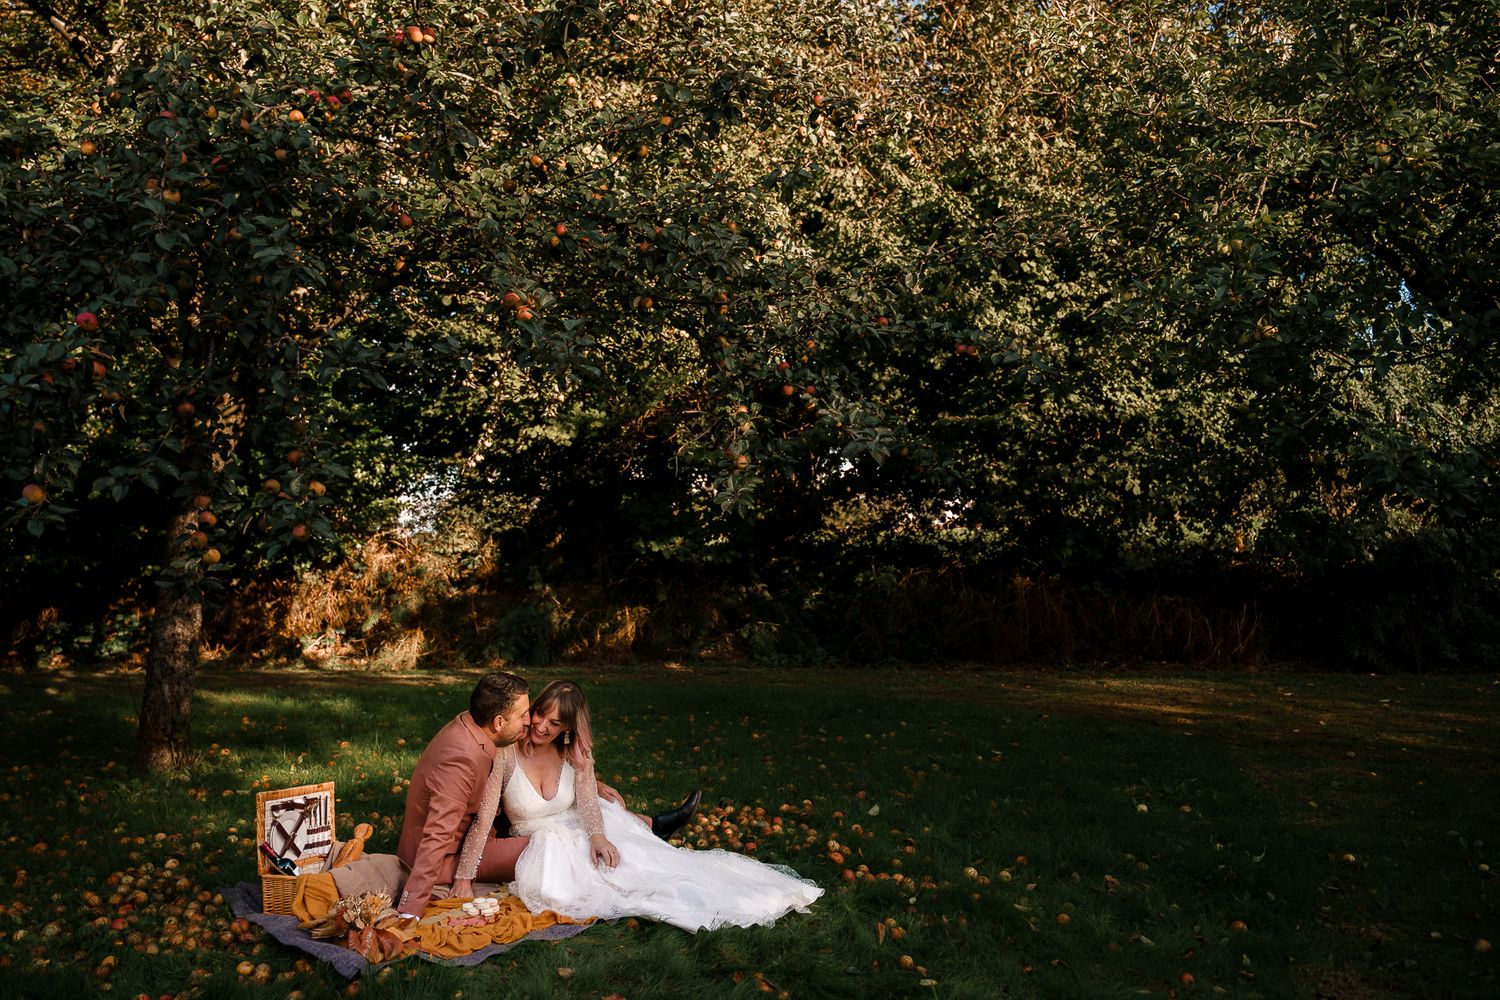 A bride and groom snuggle up together on a blanket with a picnic in a French orchard surrounded by golden fallen apples.